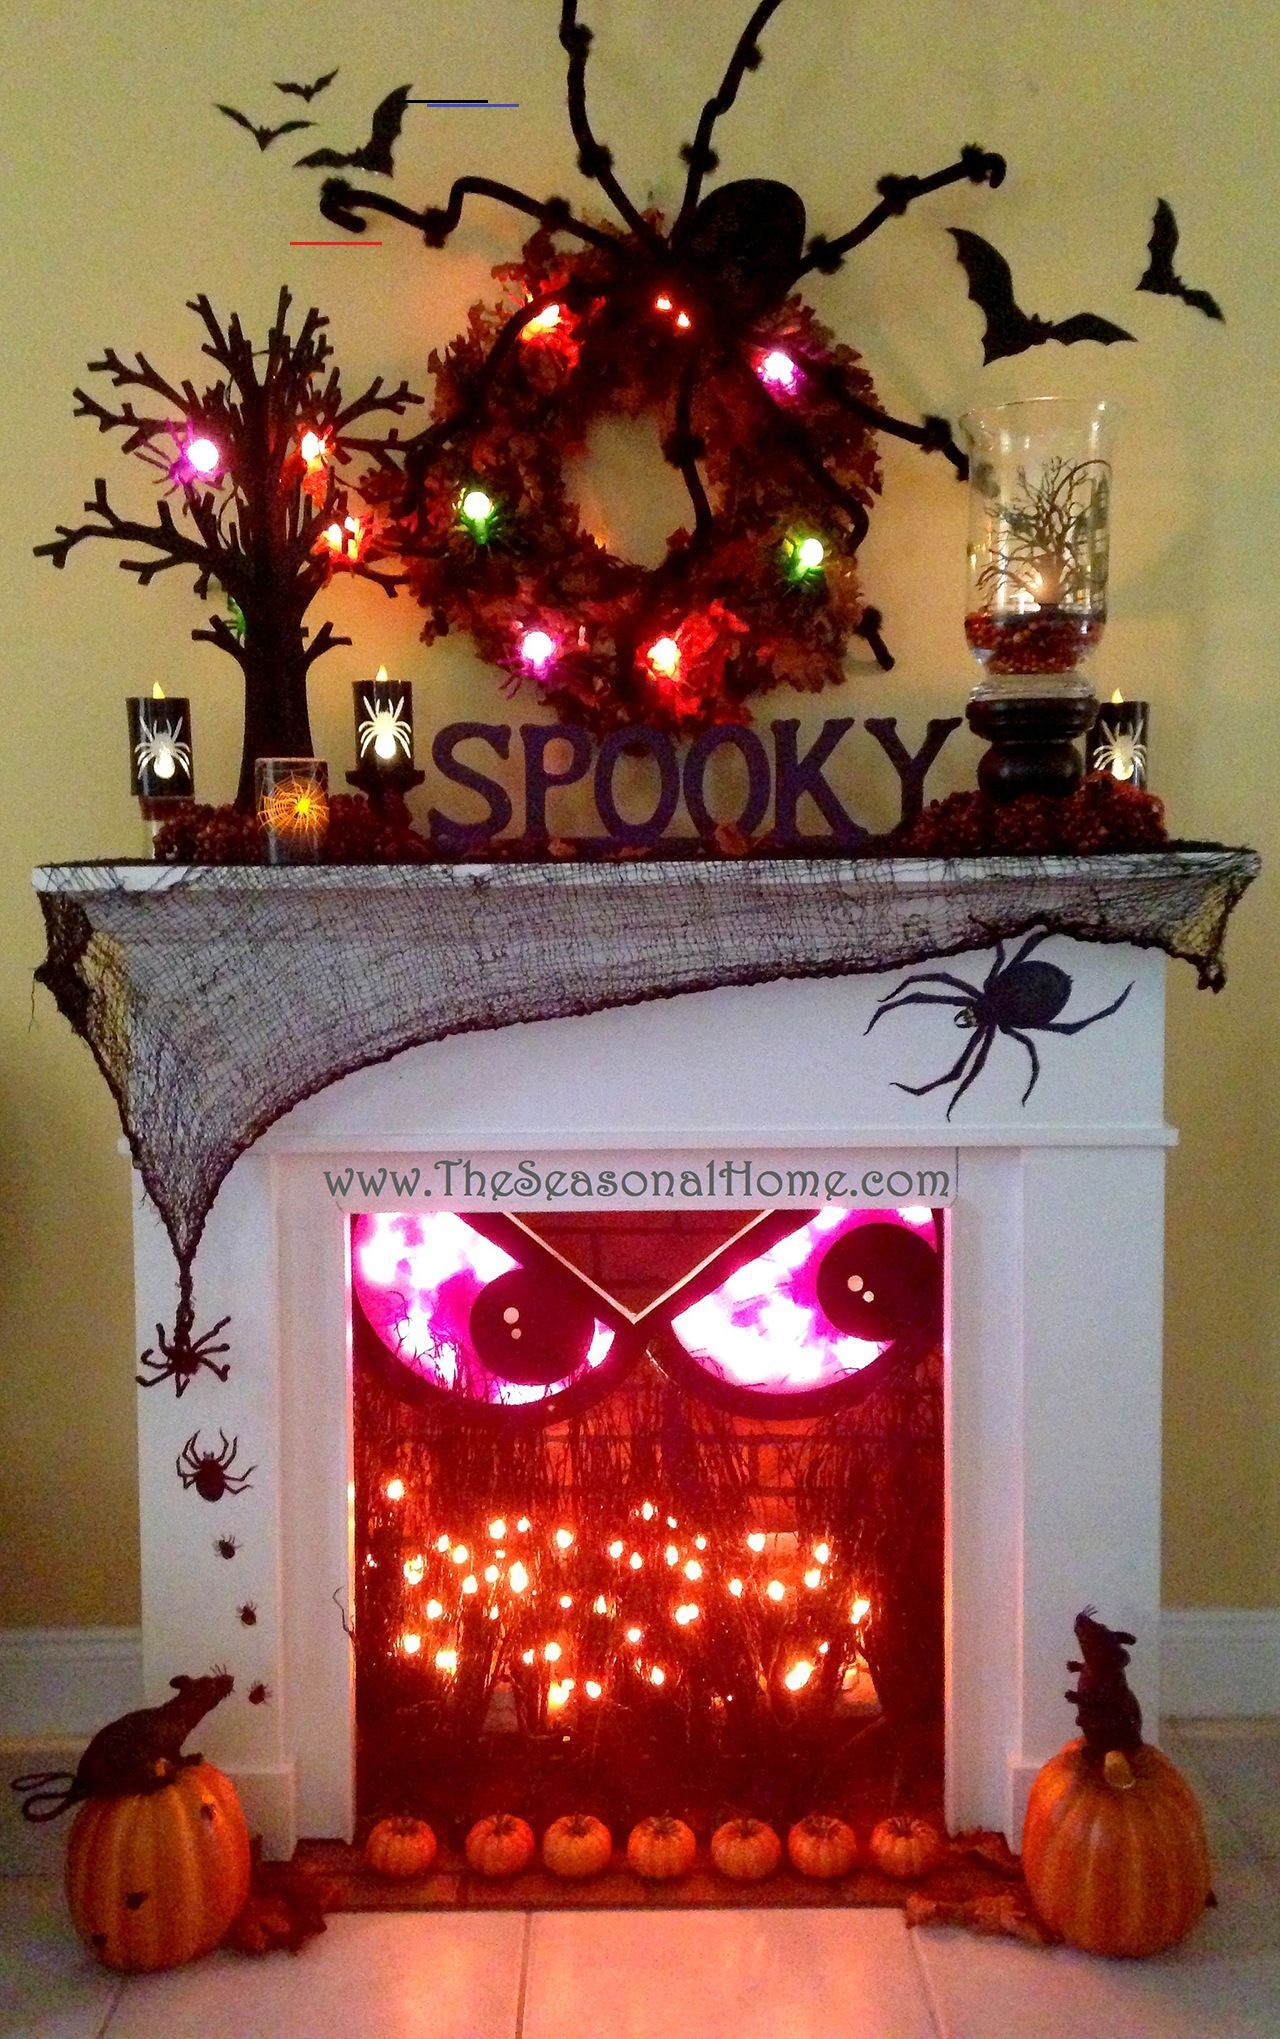 diyhalloweendecorationsforinside en 2020 Décoration